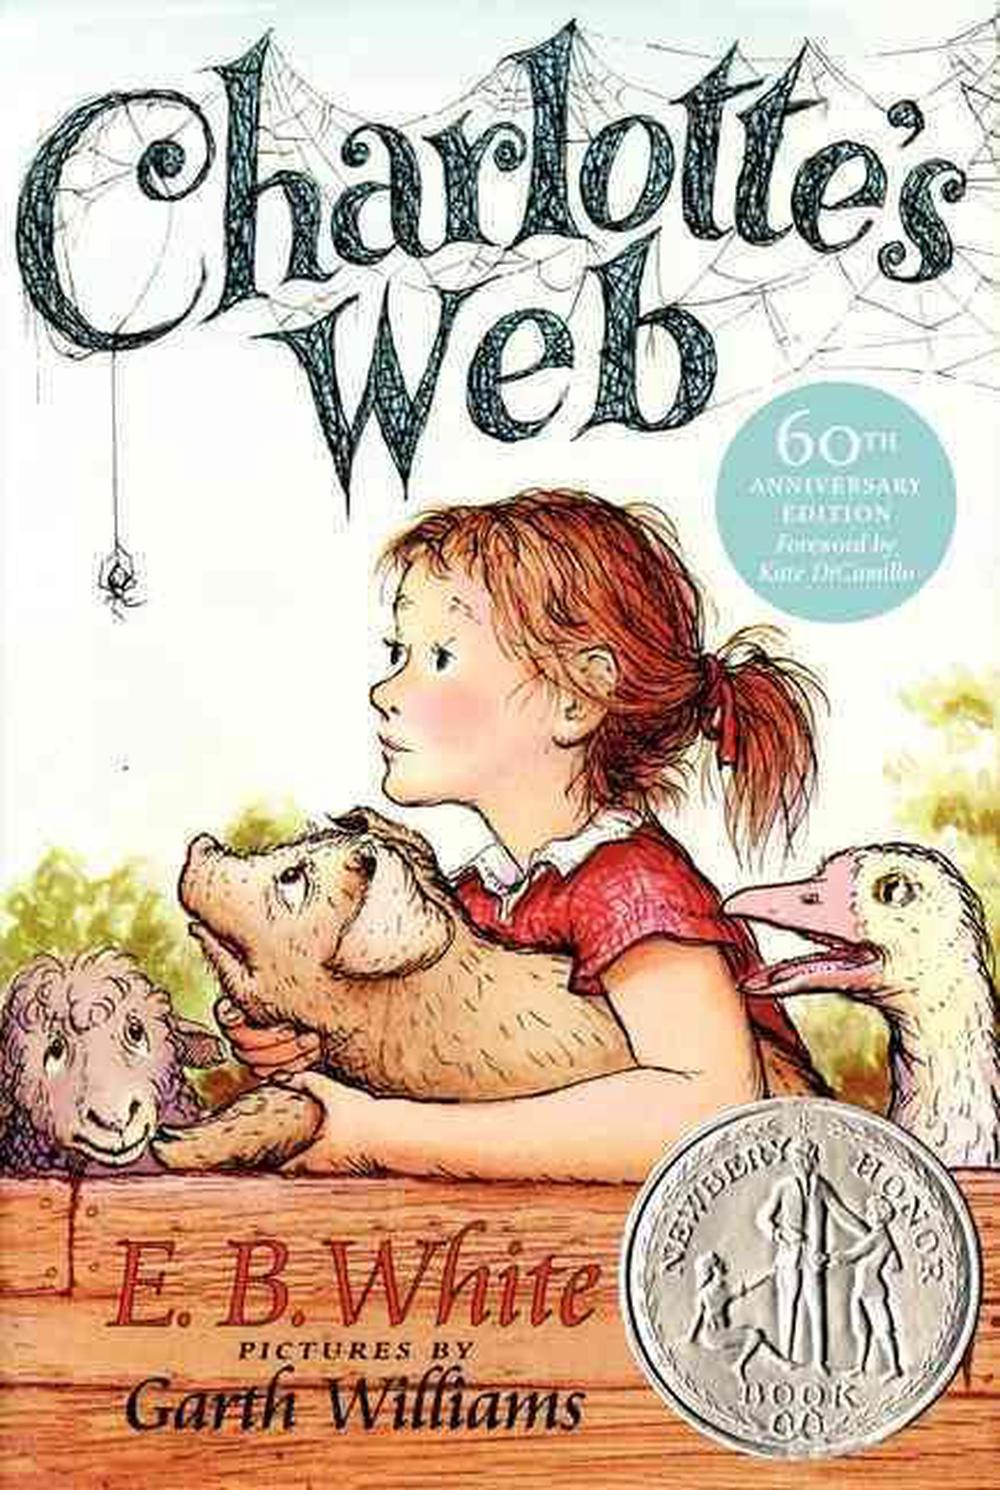 charlotte s web by e b white hardcover 9780061124952 buy online